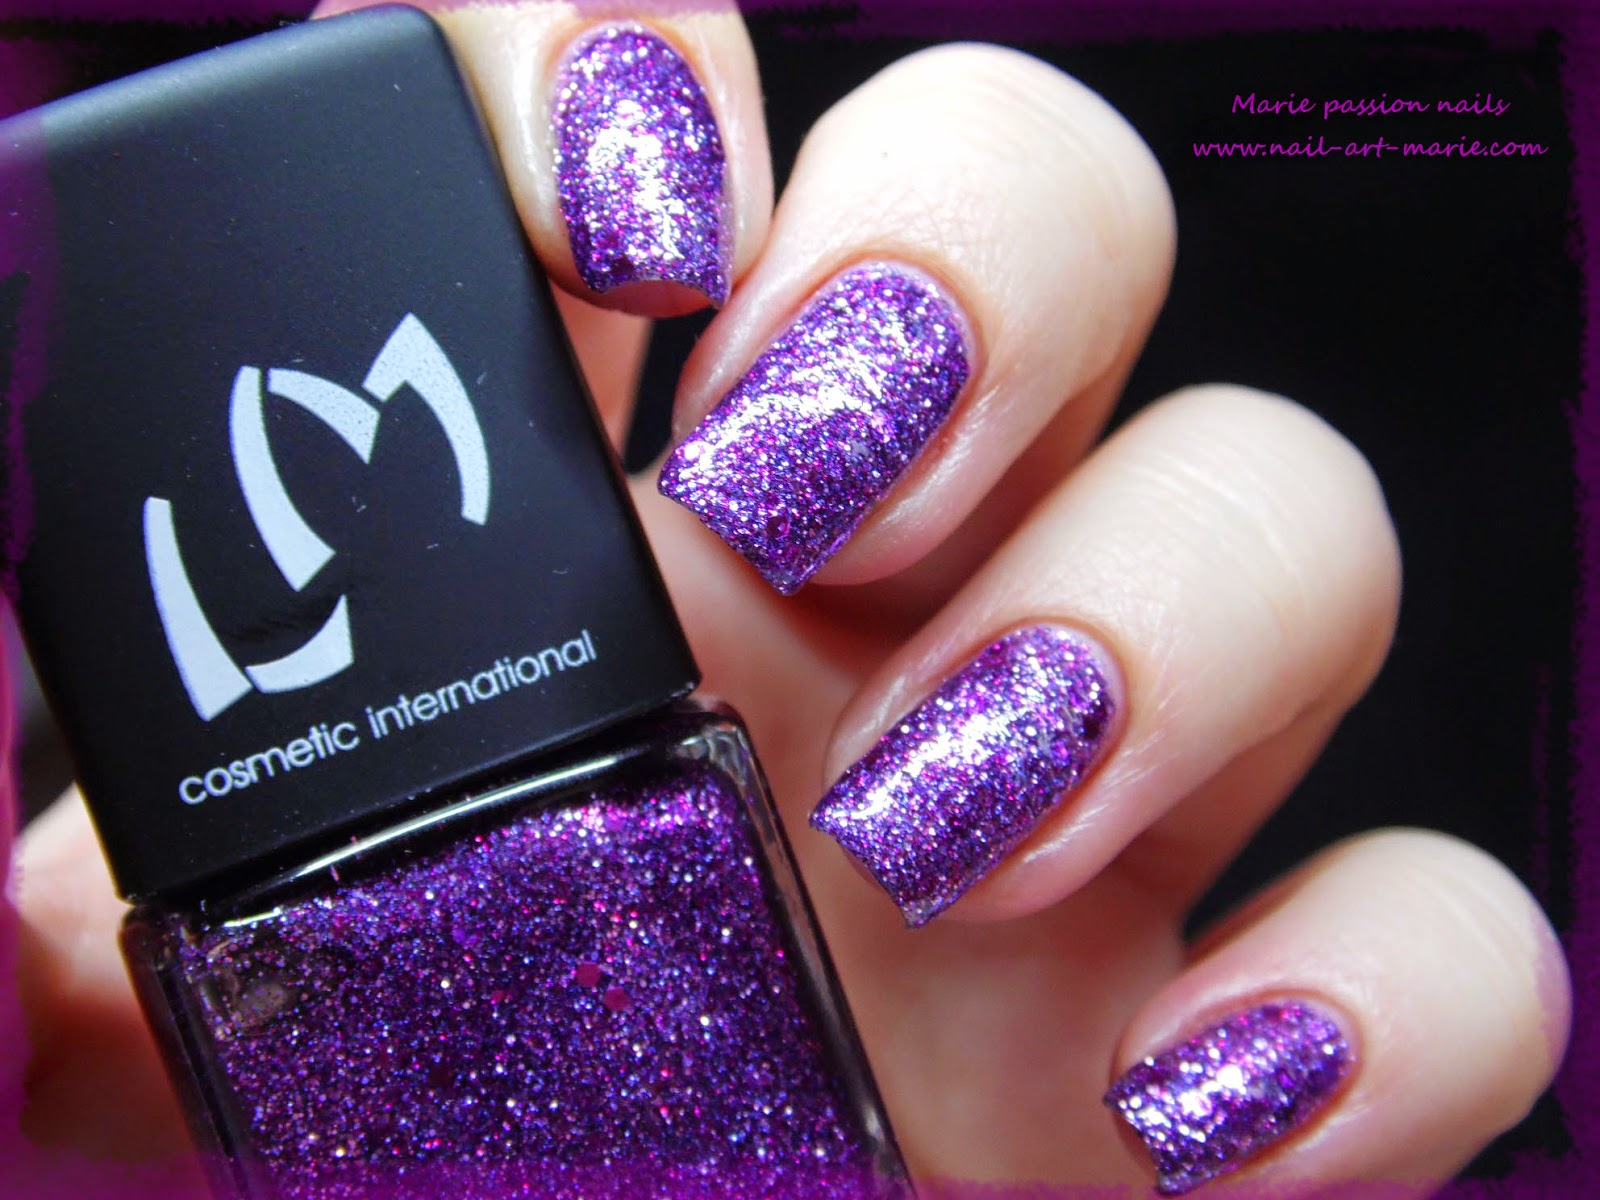 LM Cosmetic Genial7